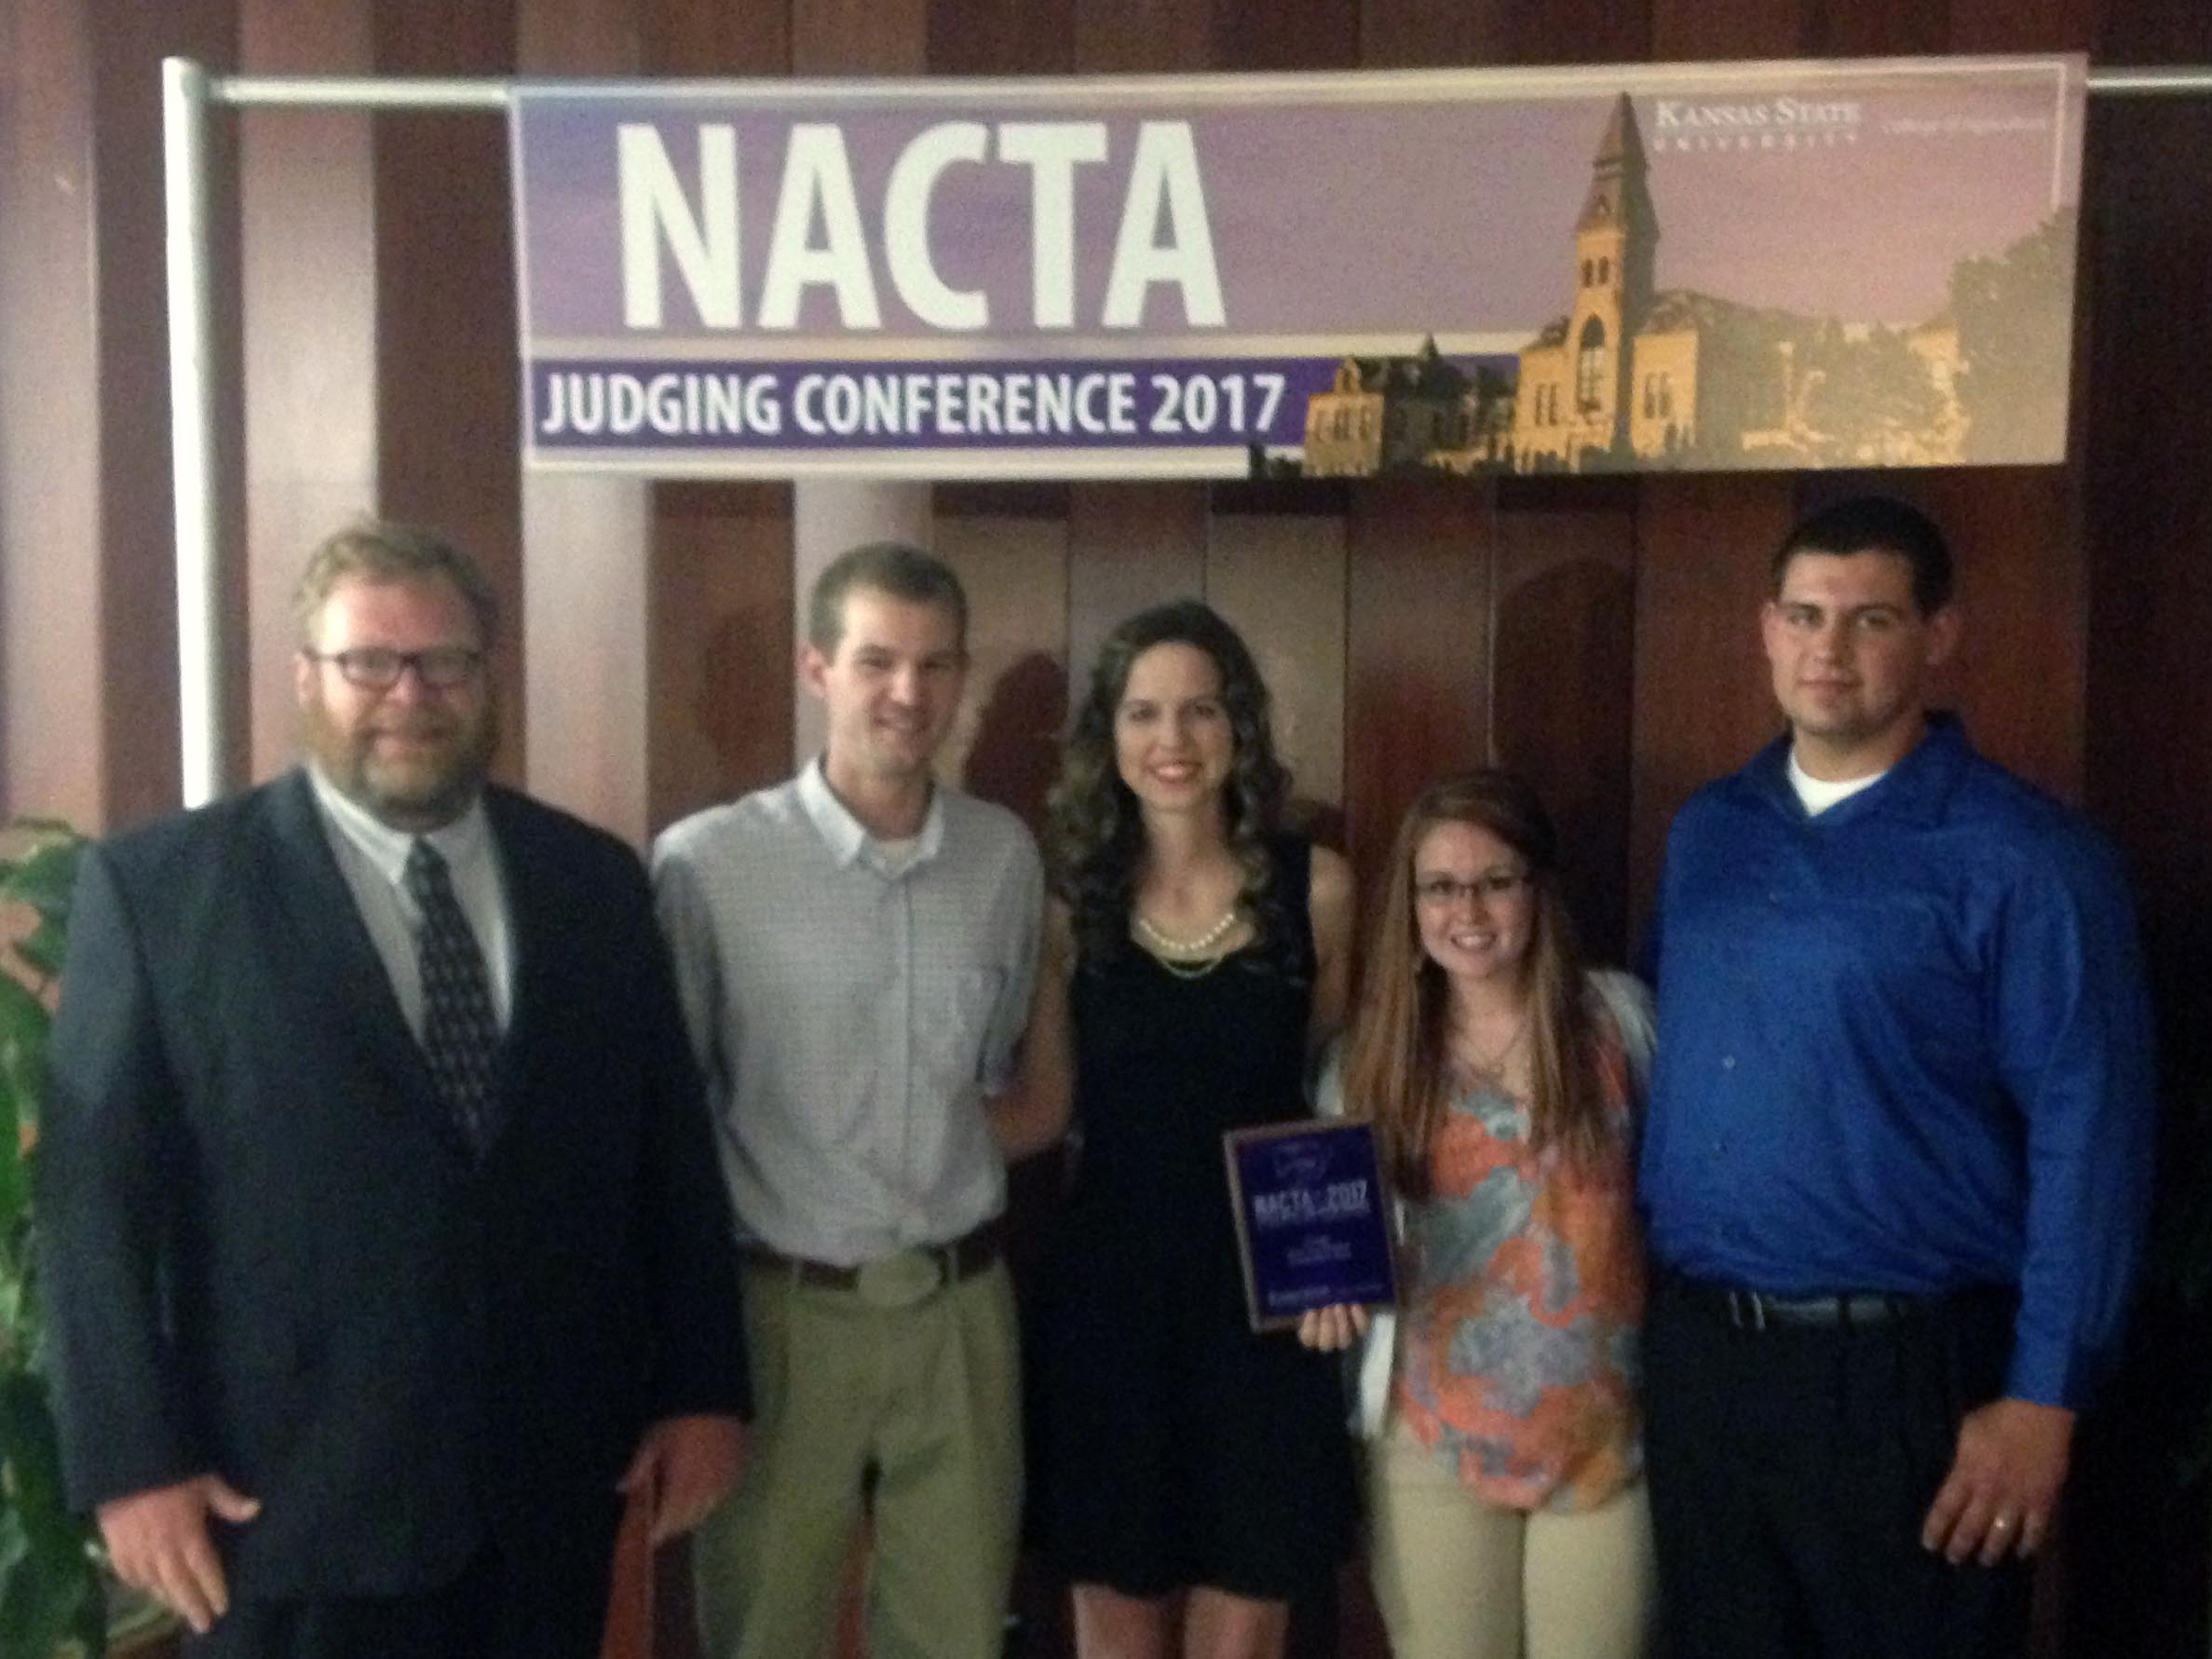 The Oklahoma Panhandle State University Crops Judging team recently finished second in the nation at the 2017 North American Colleges and Teachers of Agriculture (NACTA) Judging Conference in Manhattan, Kan. held April 6-8 at Kansas State University. Pictured from left to right: Dr. Curtis Bensch, Cody Fischer, Sidney Rentz, Tyler Meyeres, and Ben Brady. —Courtesy photo